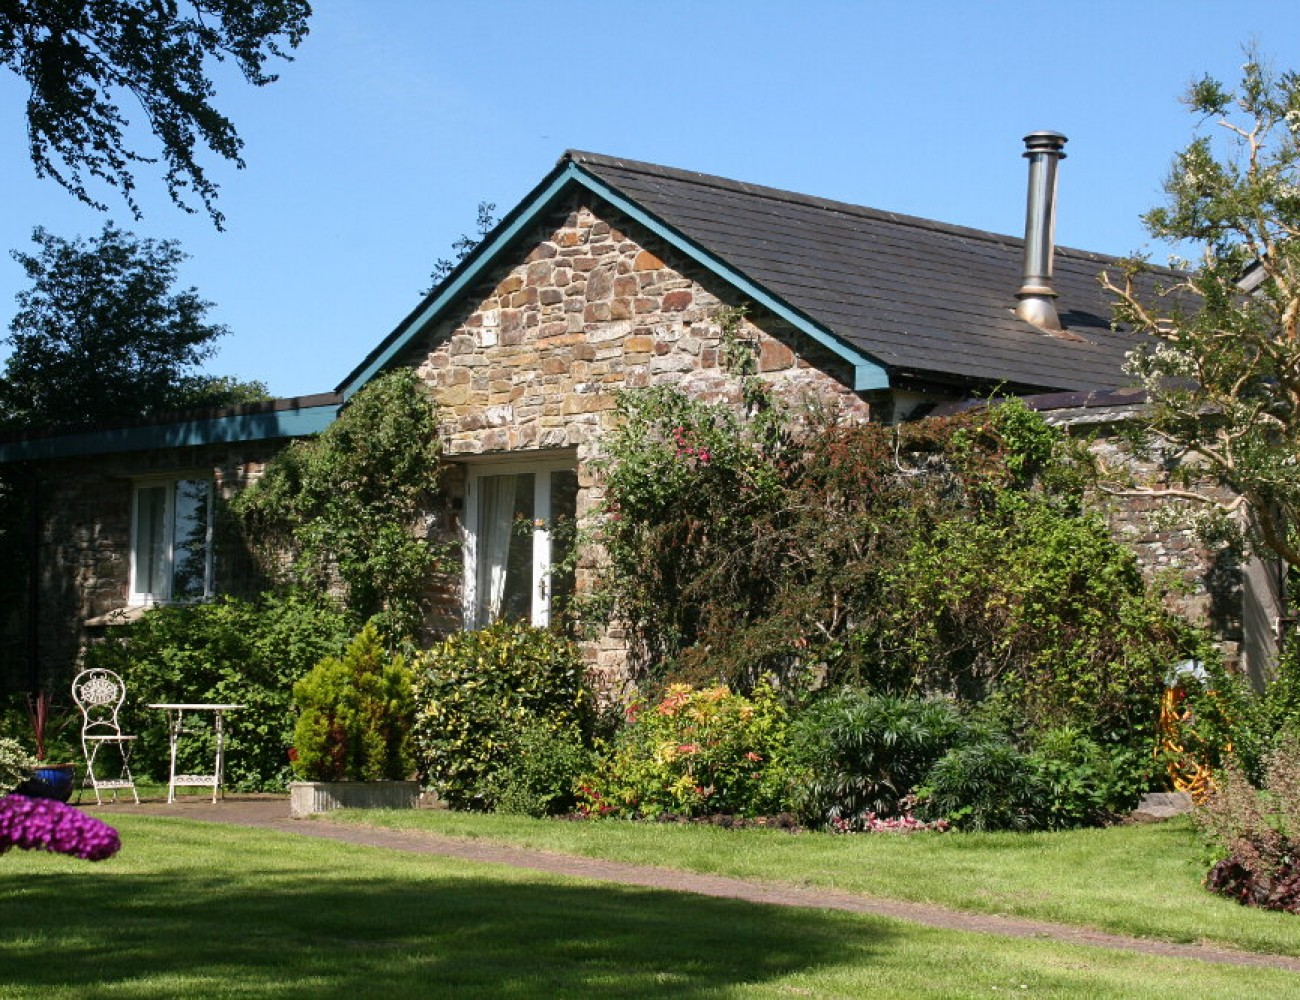 The garden cottage unique holiday cottages for Unique holiday cottages